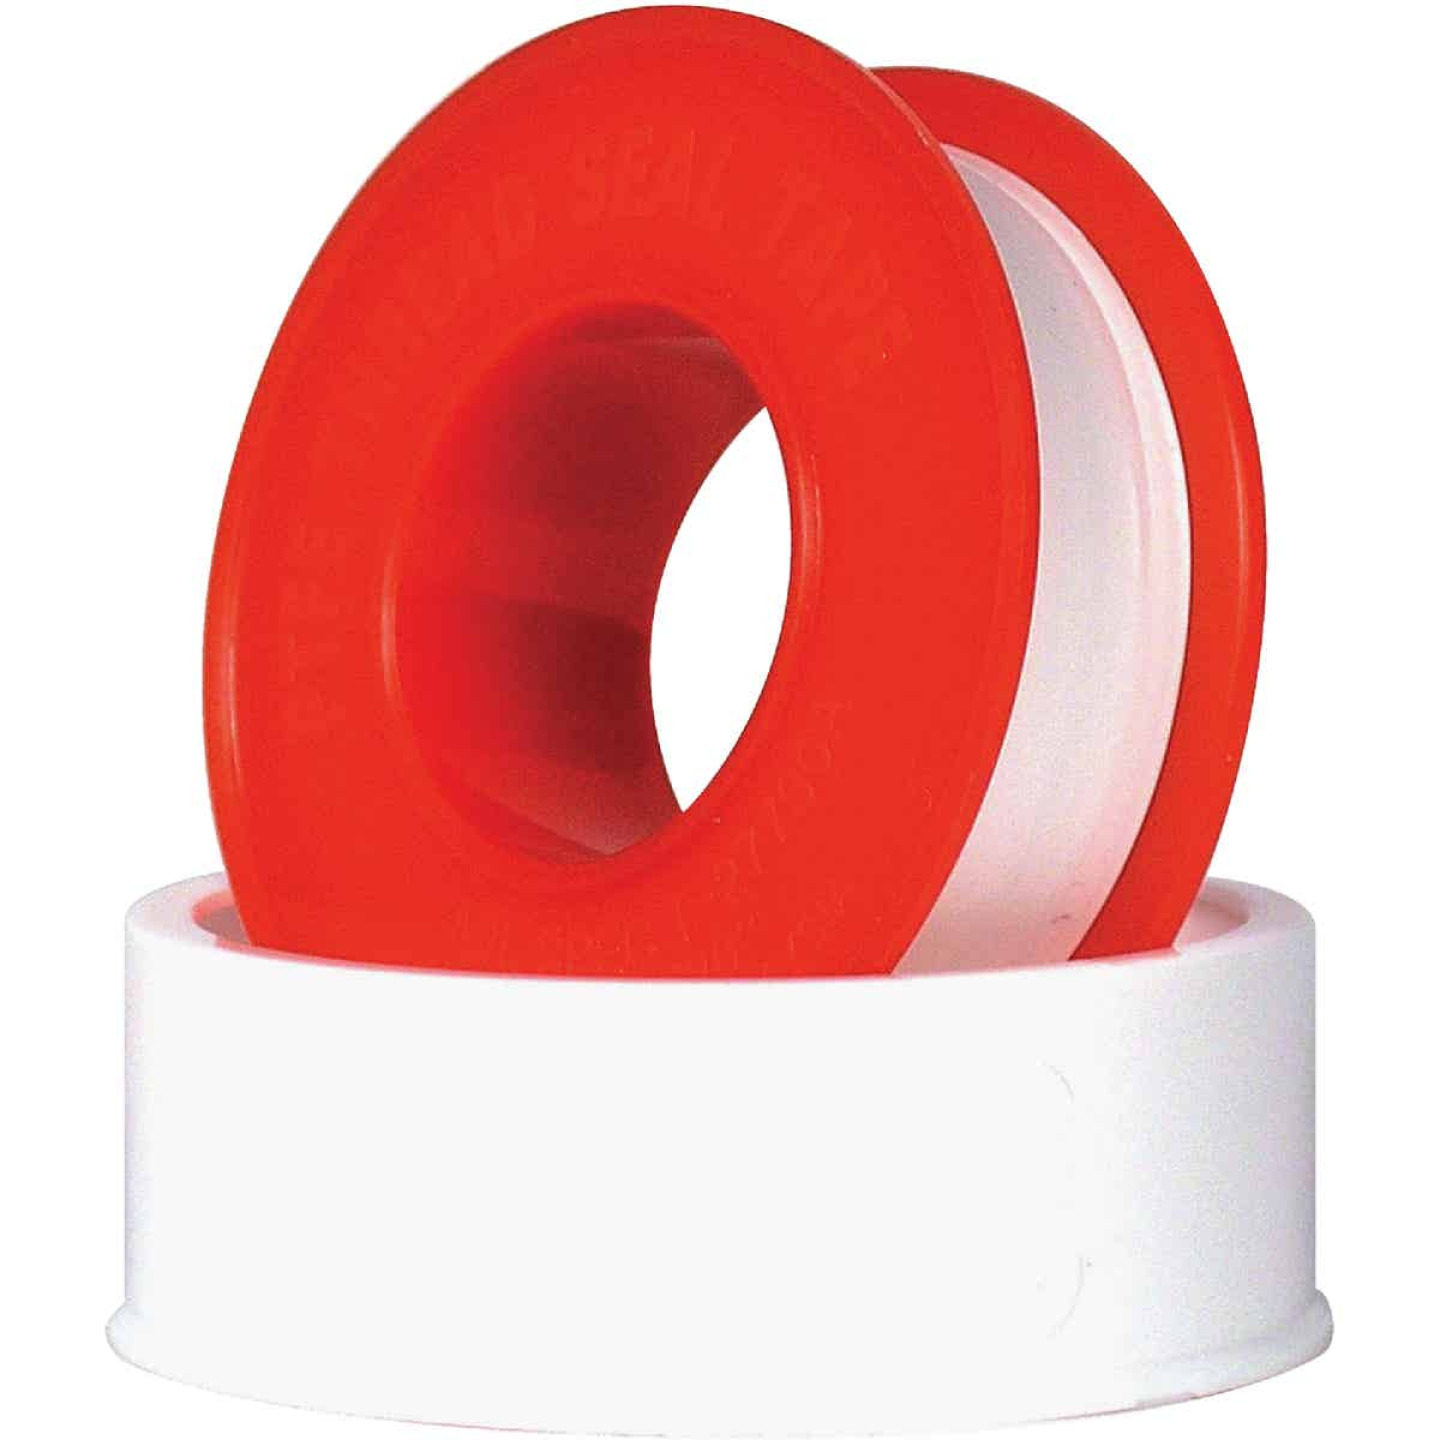 Do it Best 1/2 In. x 260 In. White Thread Seal Tape Image 1